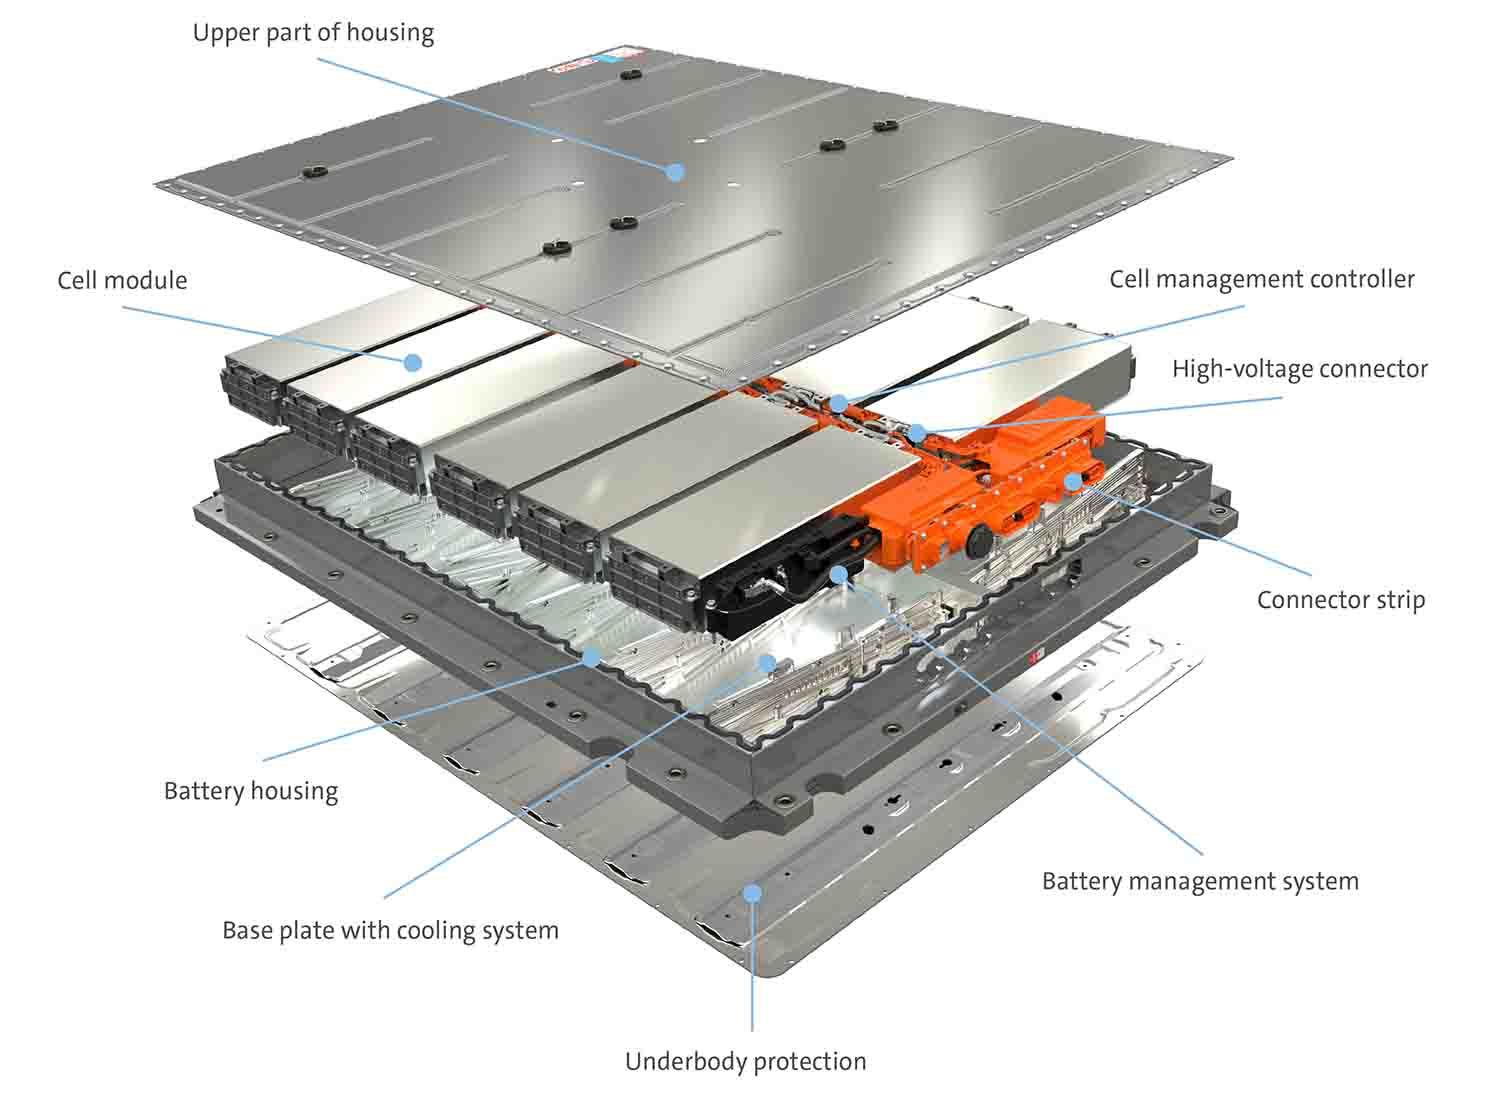 The components of the MEB battery system for electric cars